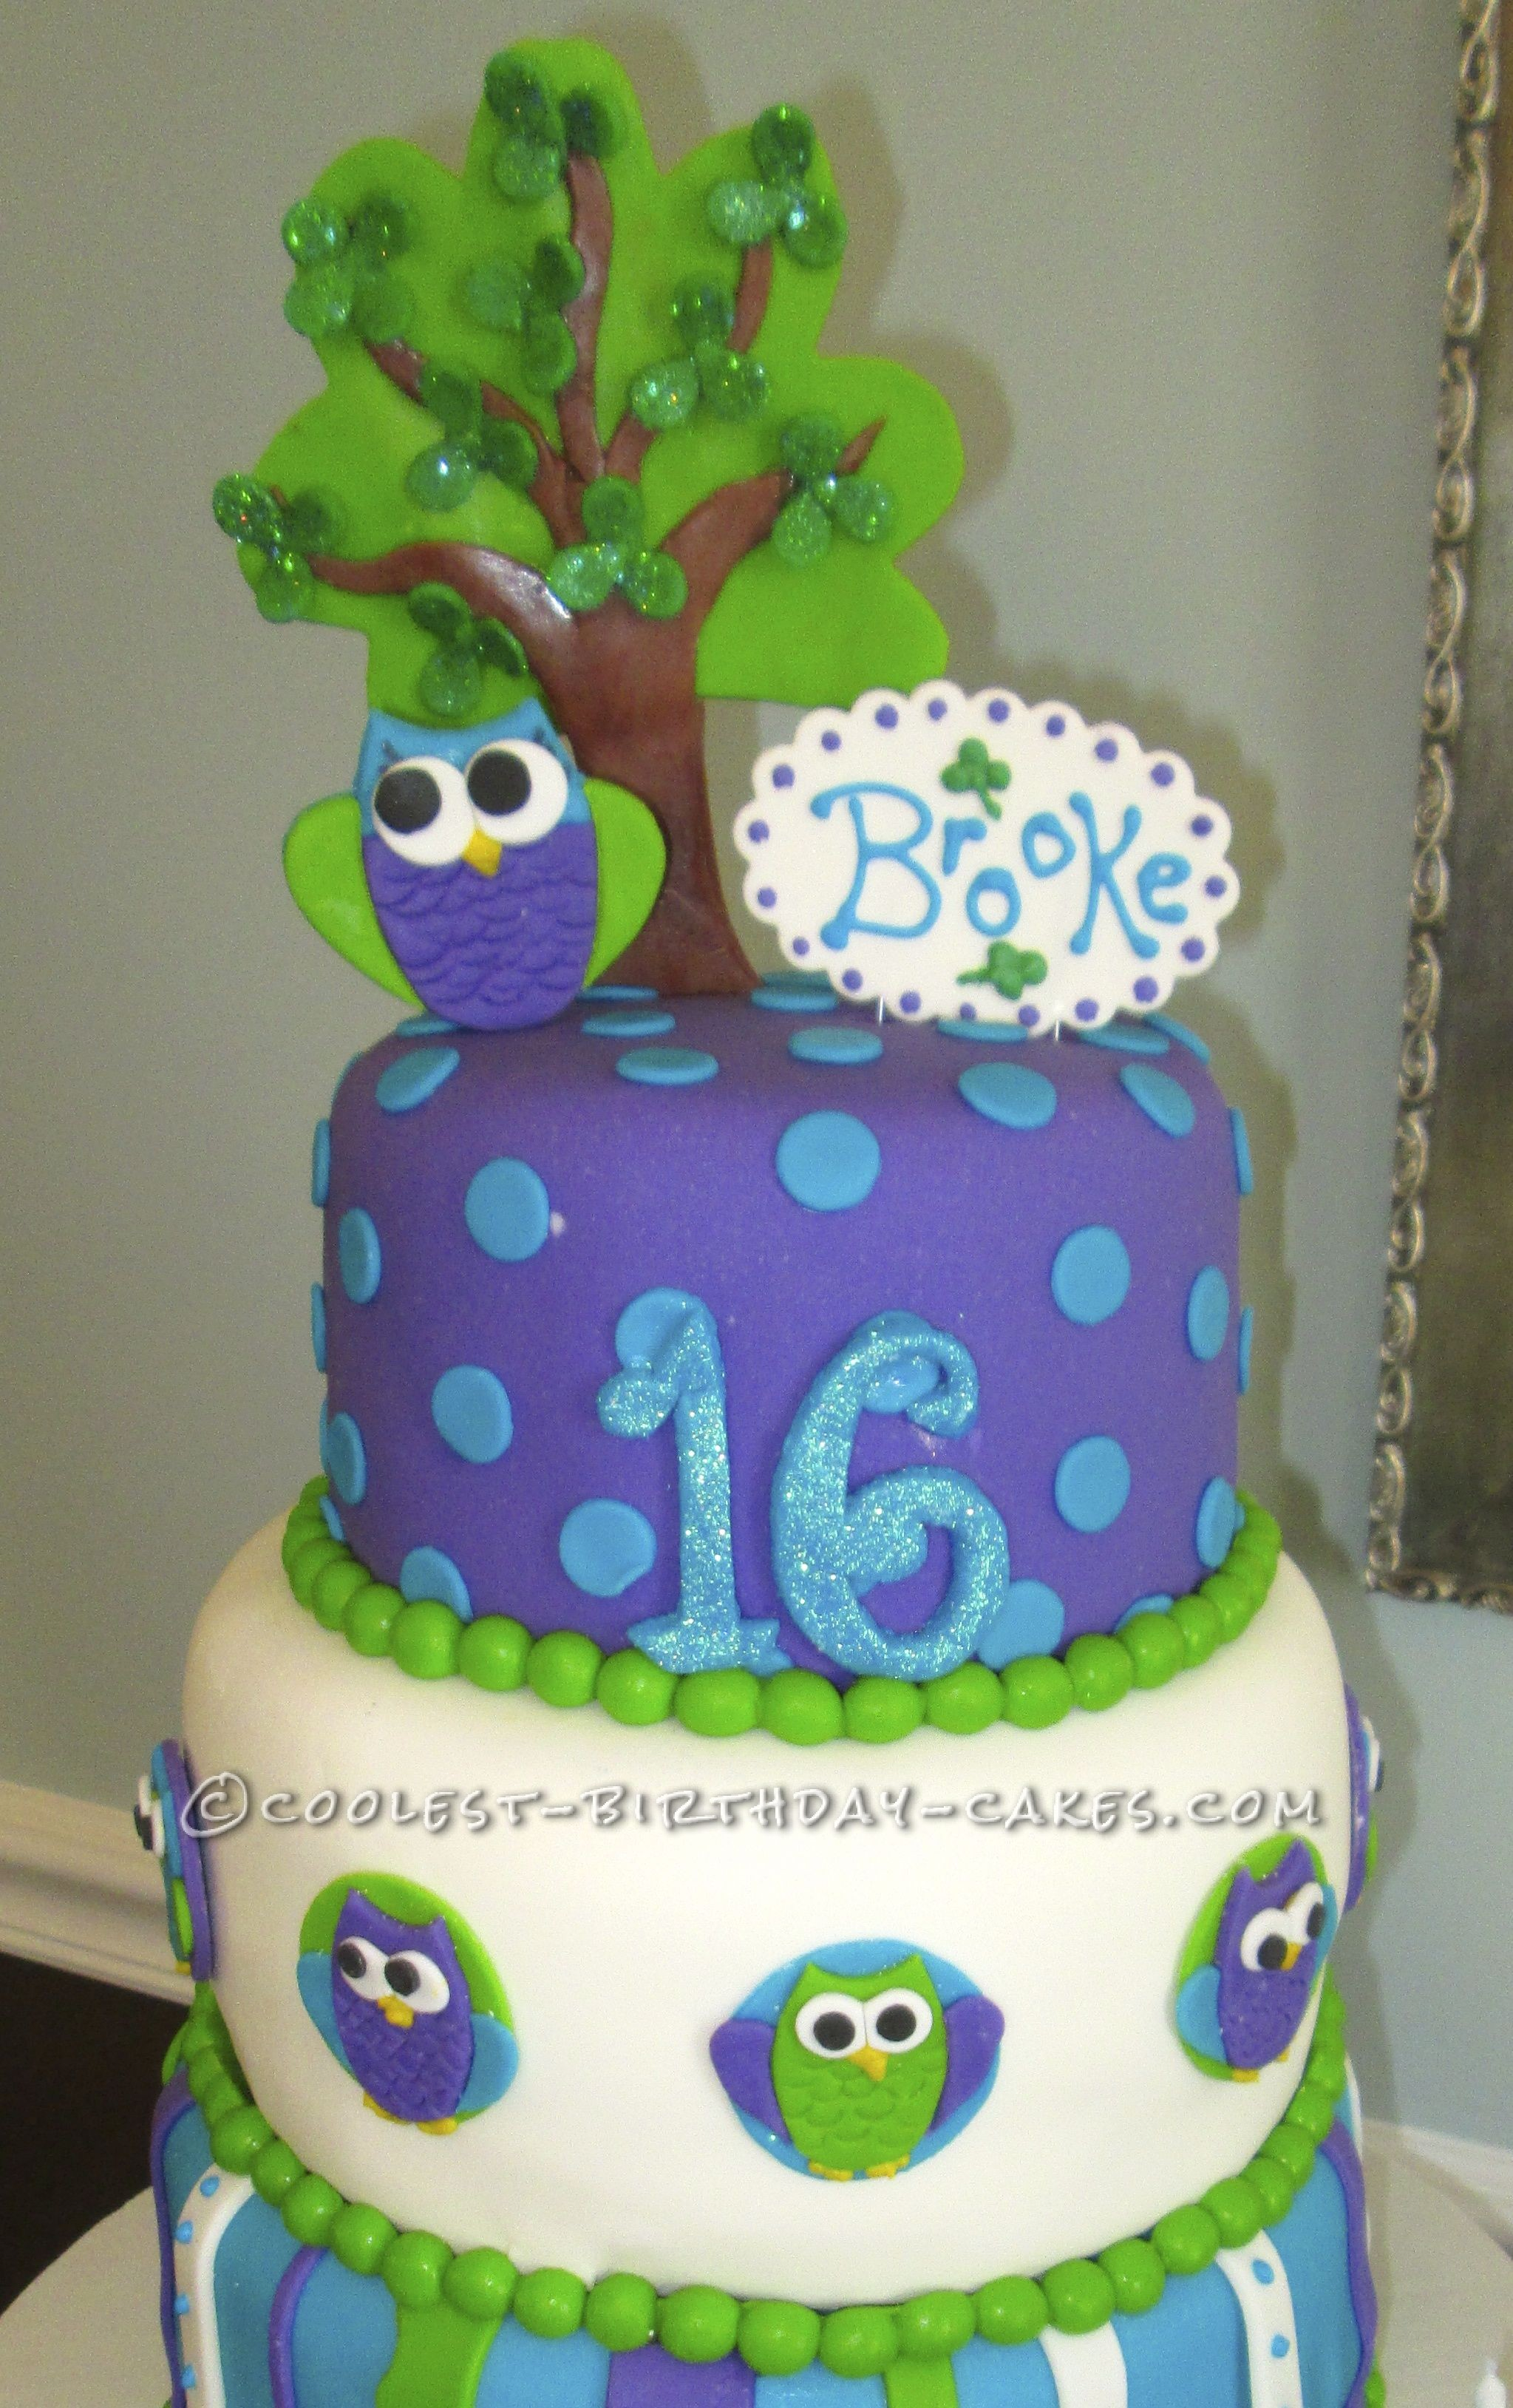 Who's Sweet 16 on St. Paddy's Day Cake